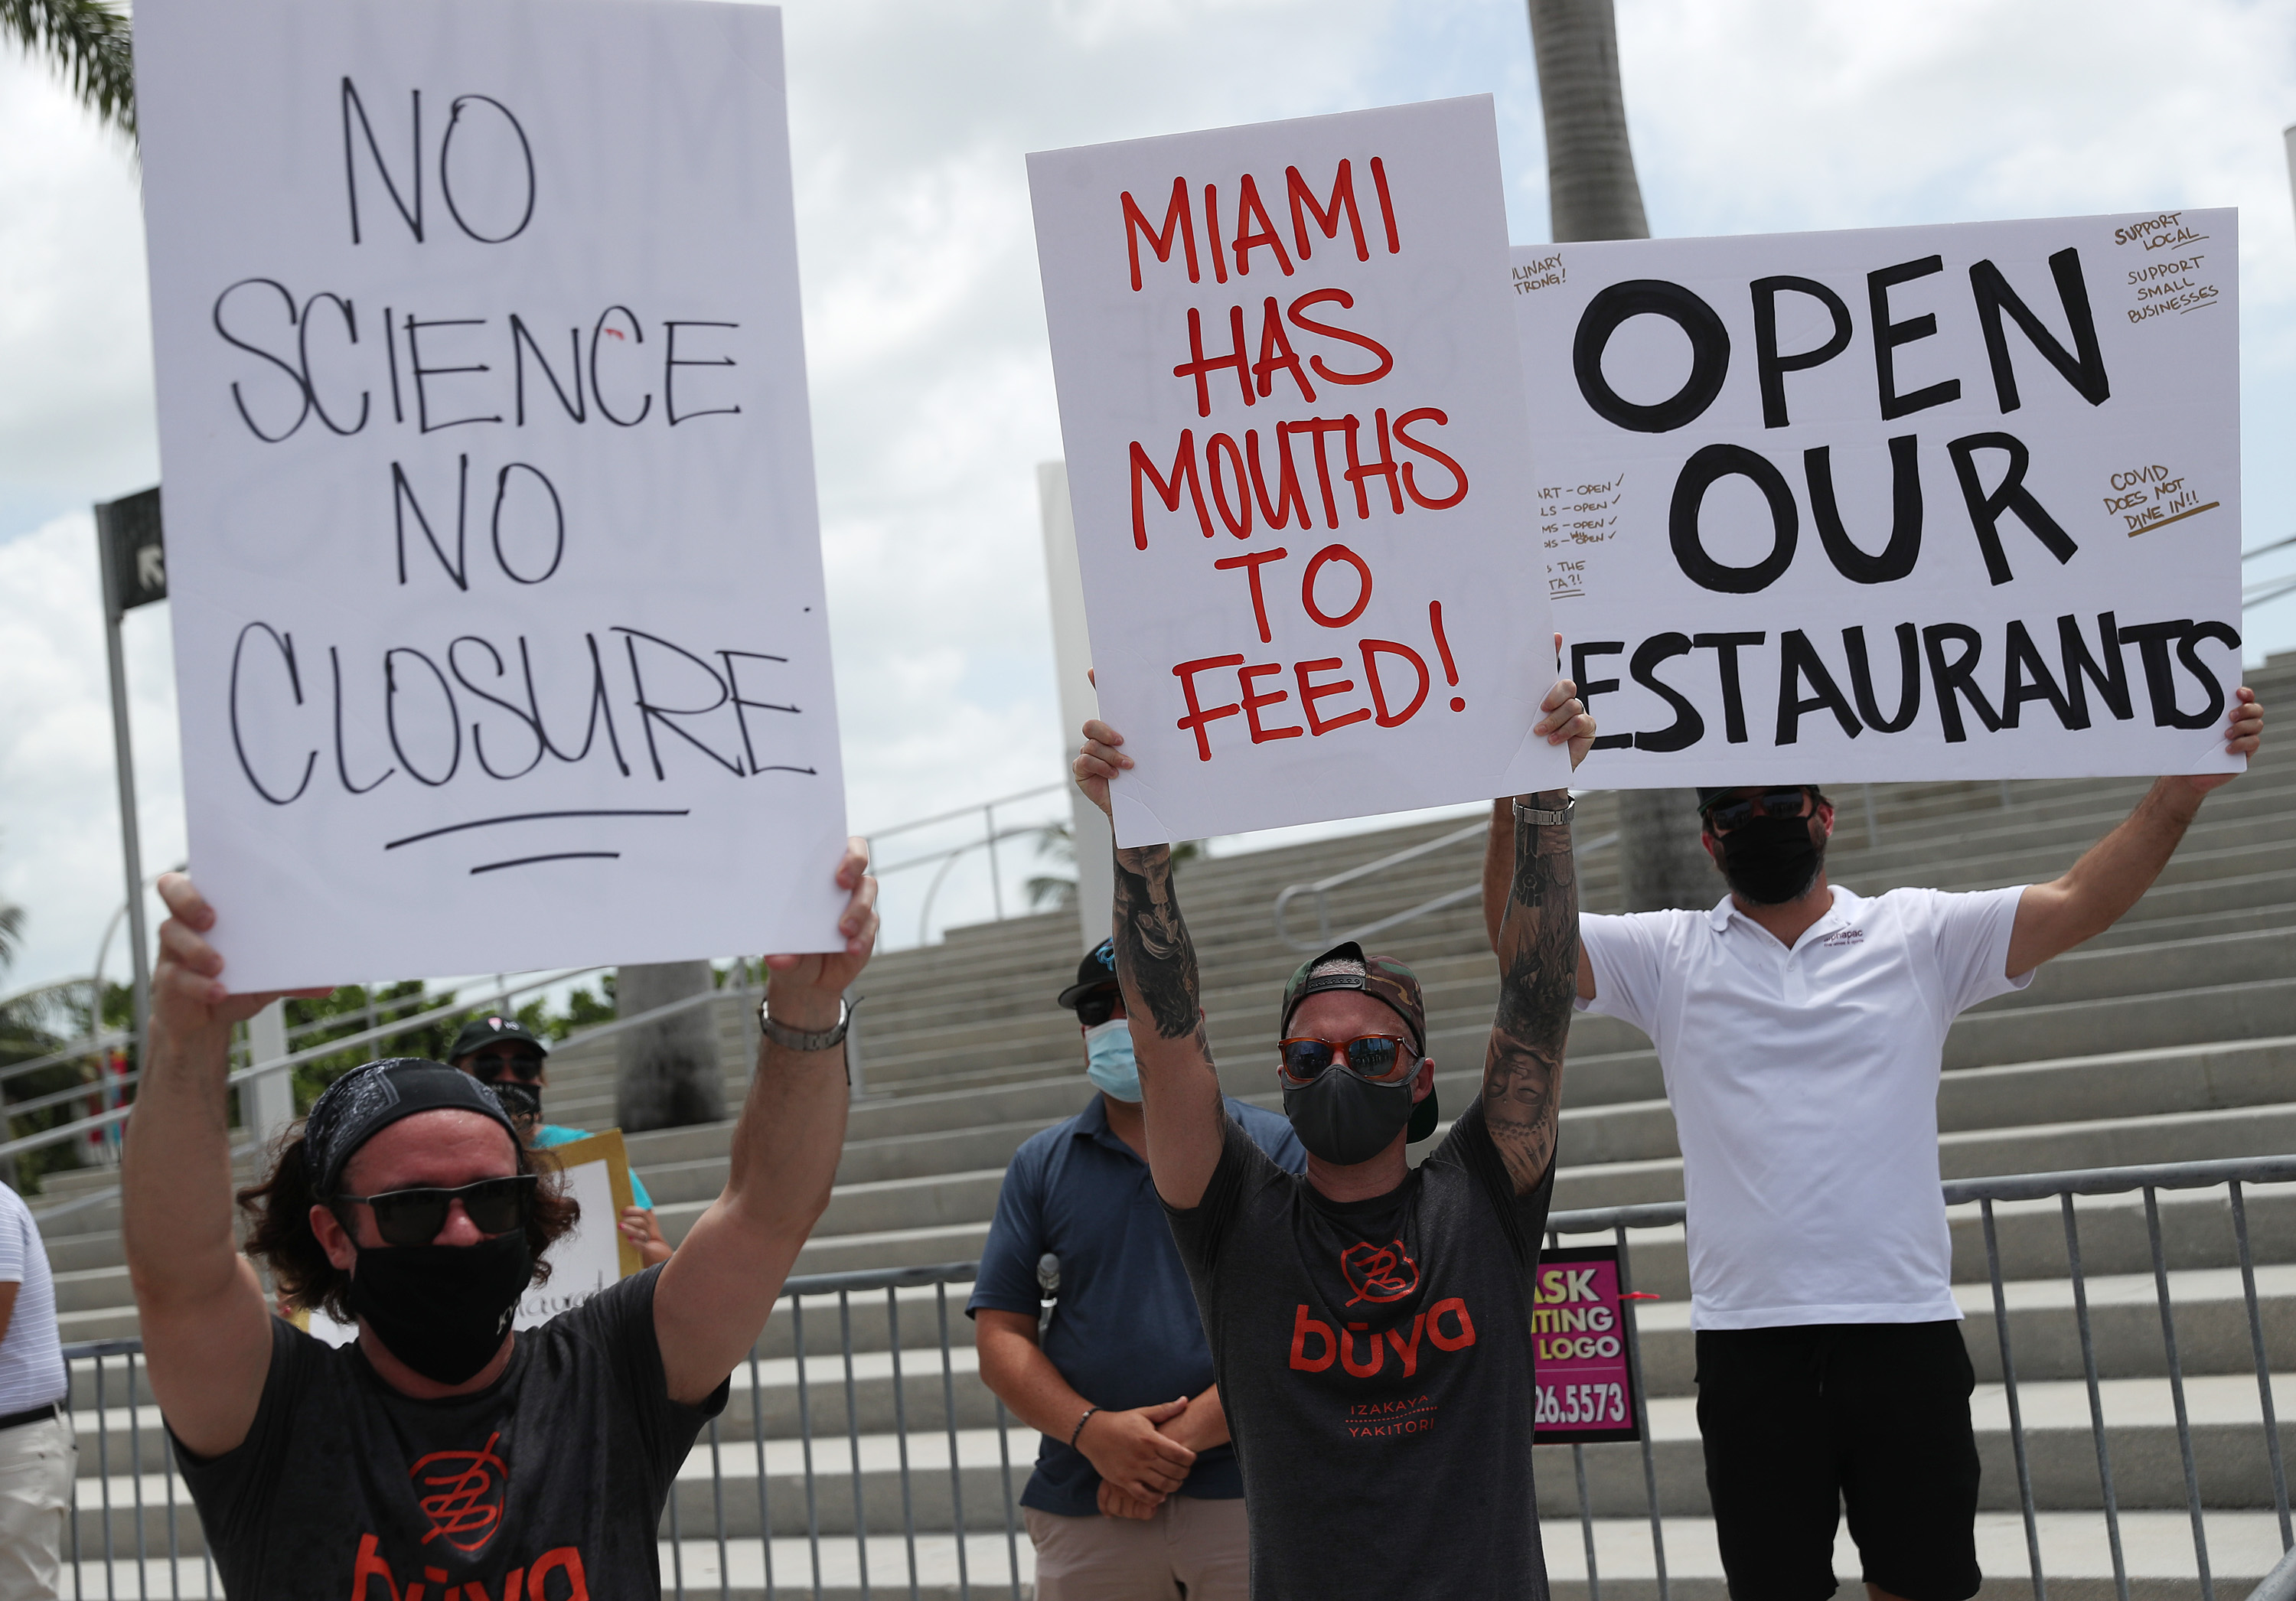 Una protesta de dueños de restaurantes en Miami (Joe Raedle/Getty Images/AFP)